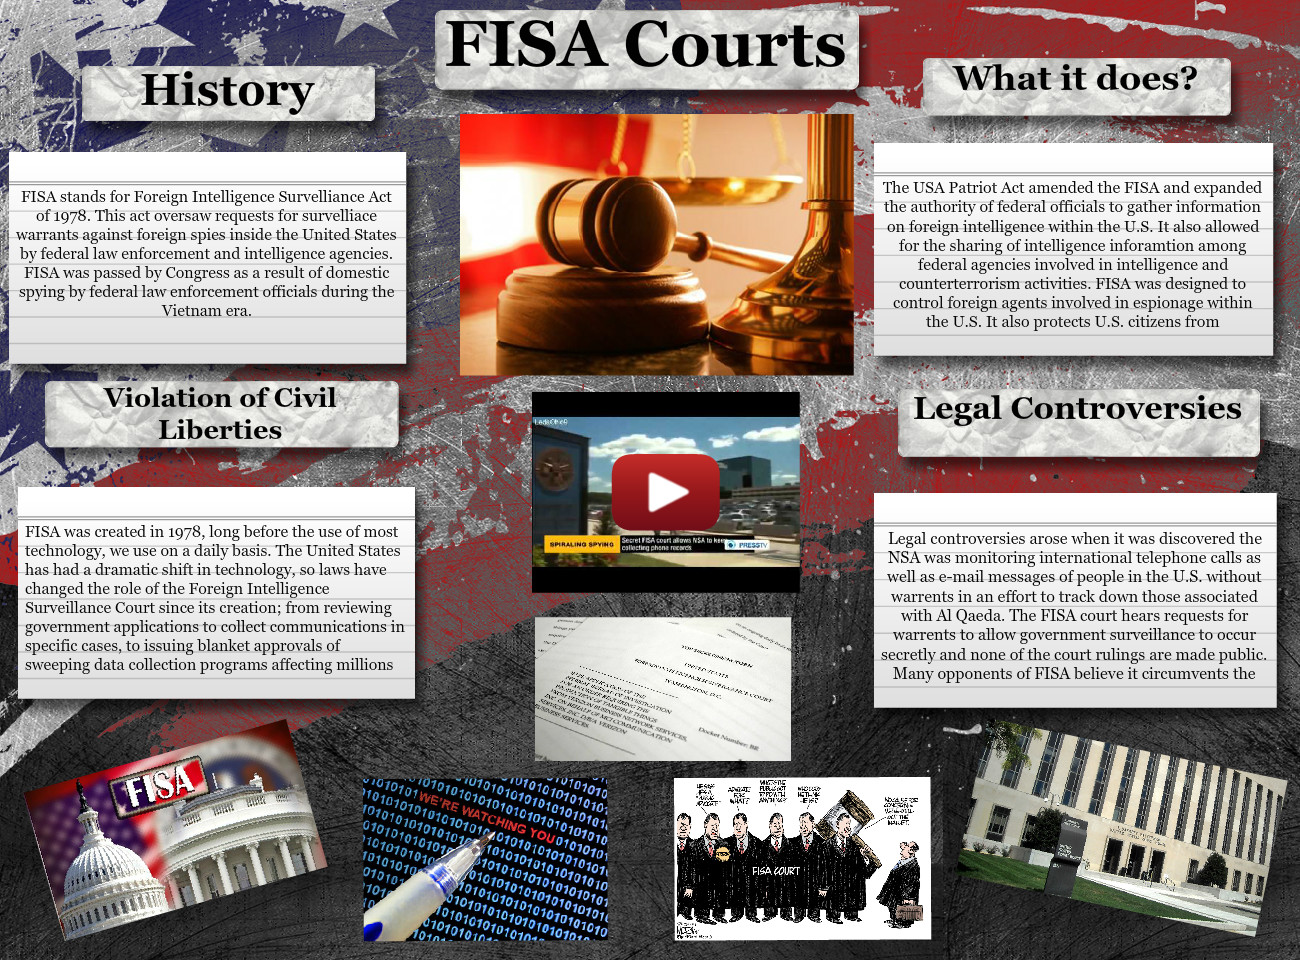 [2015] stephanie vaughan: FISA Courts